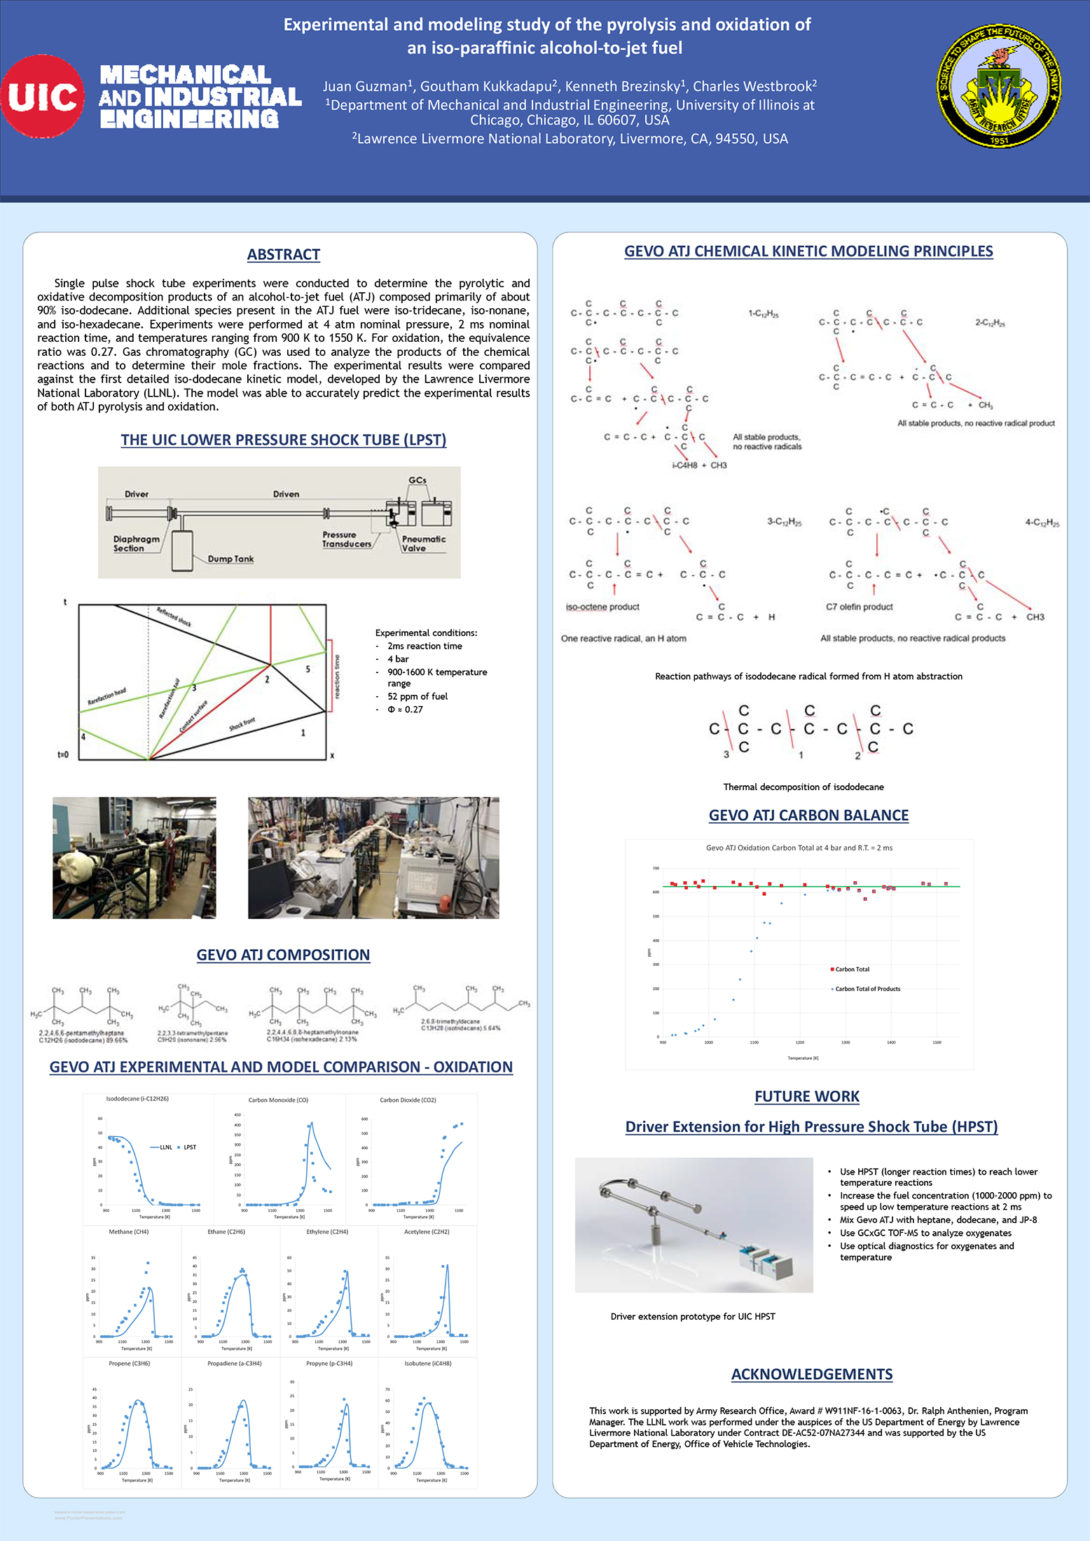 Experimental and Modelling Study of the Pyrolysis and Oxidation of iso-paraffinic alcohol-to-jet fuel